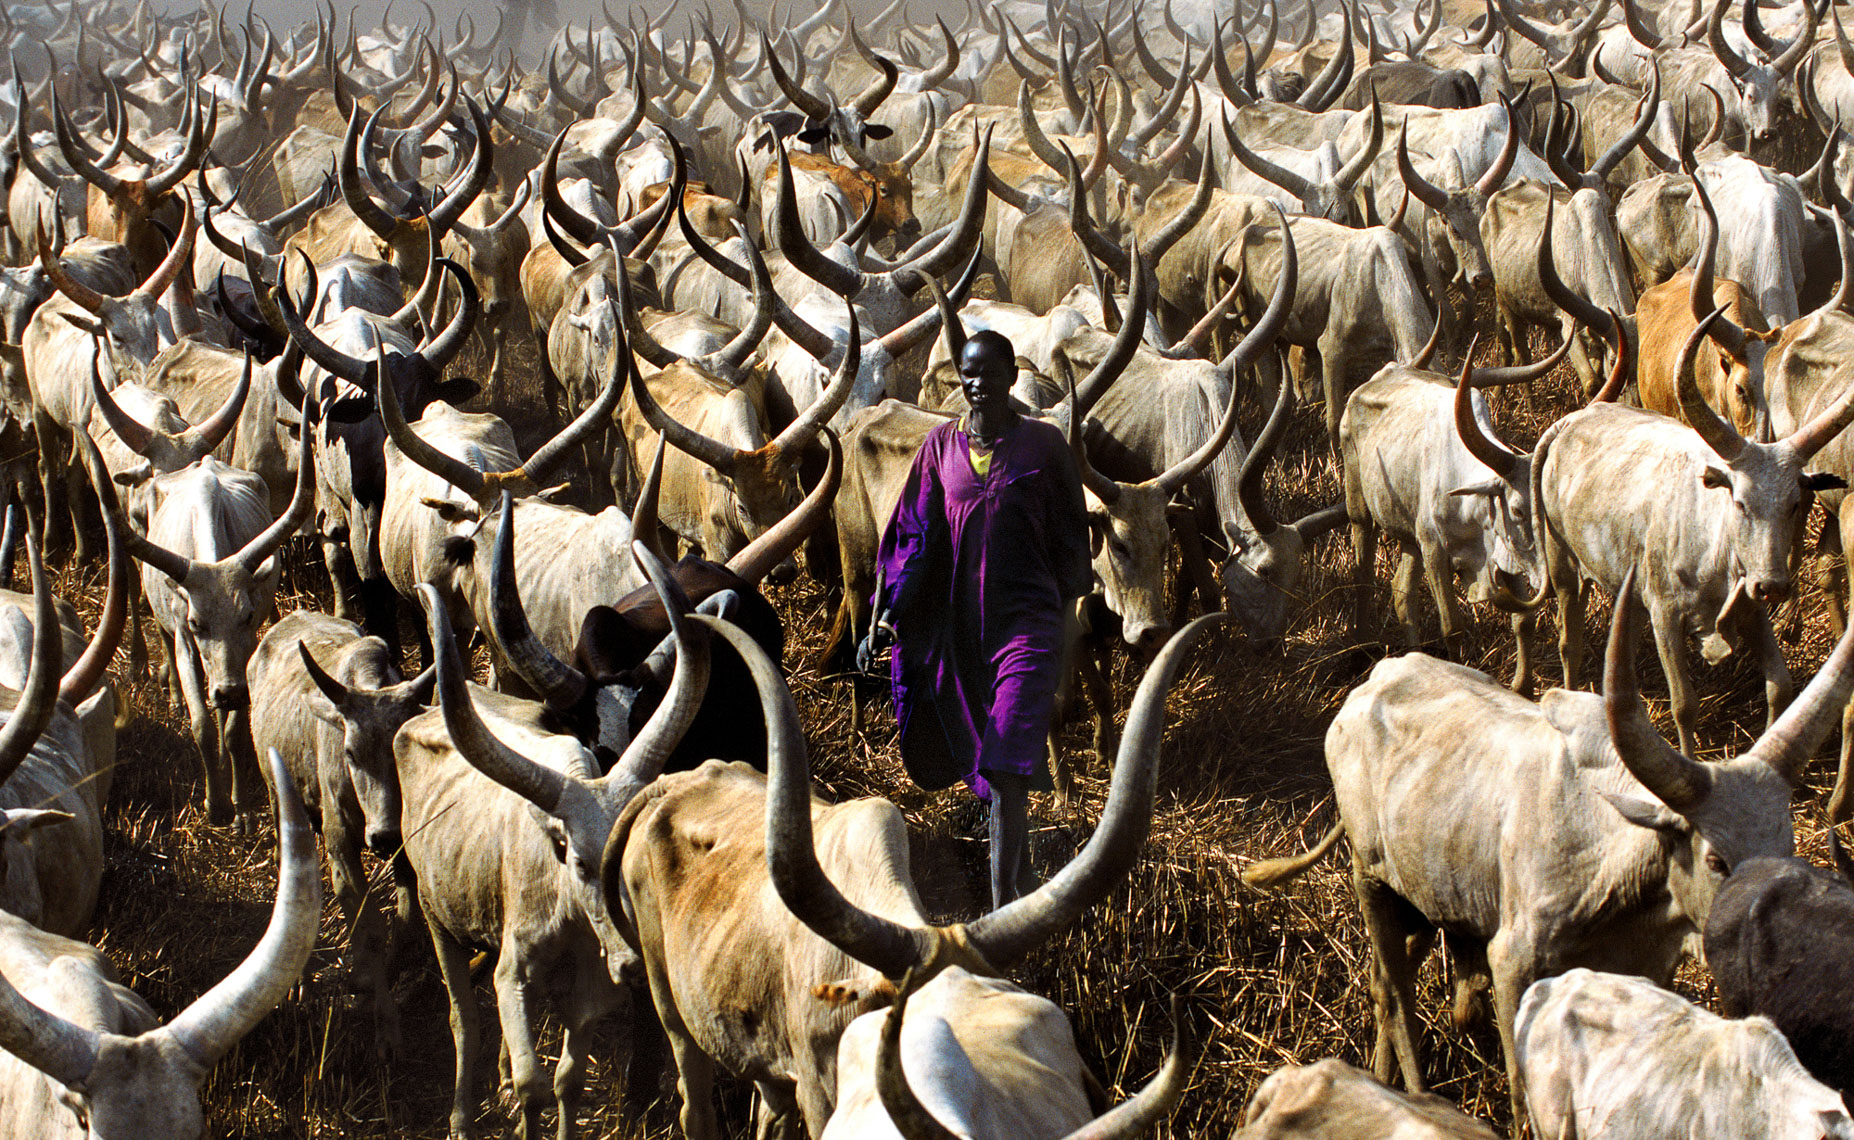 Dinka Herder in Purple Robe, South Sudan